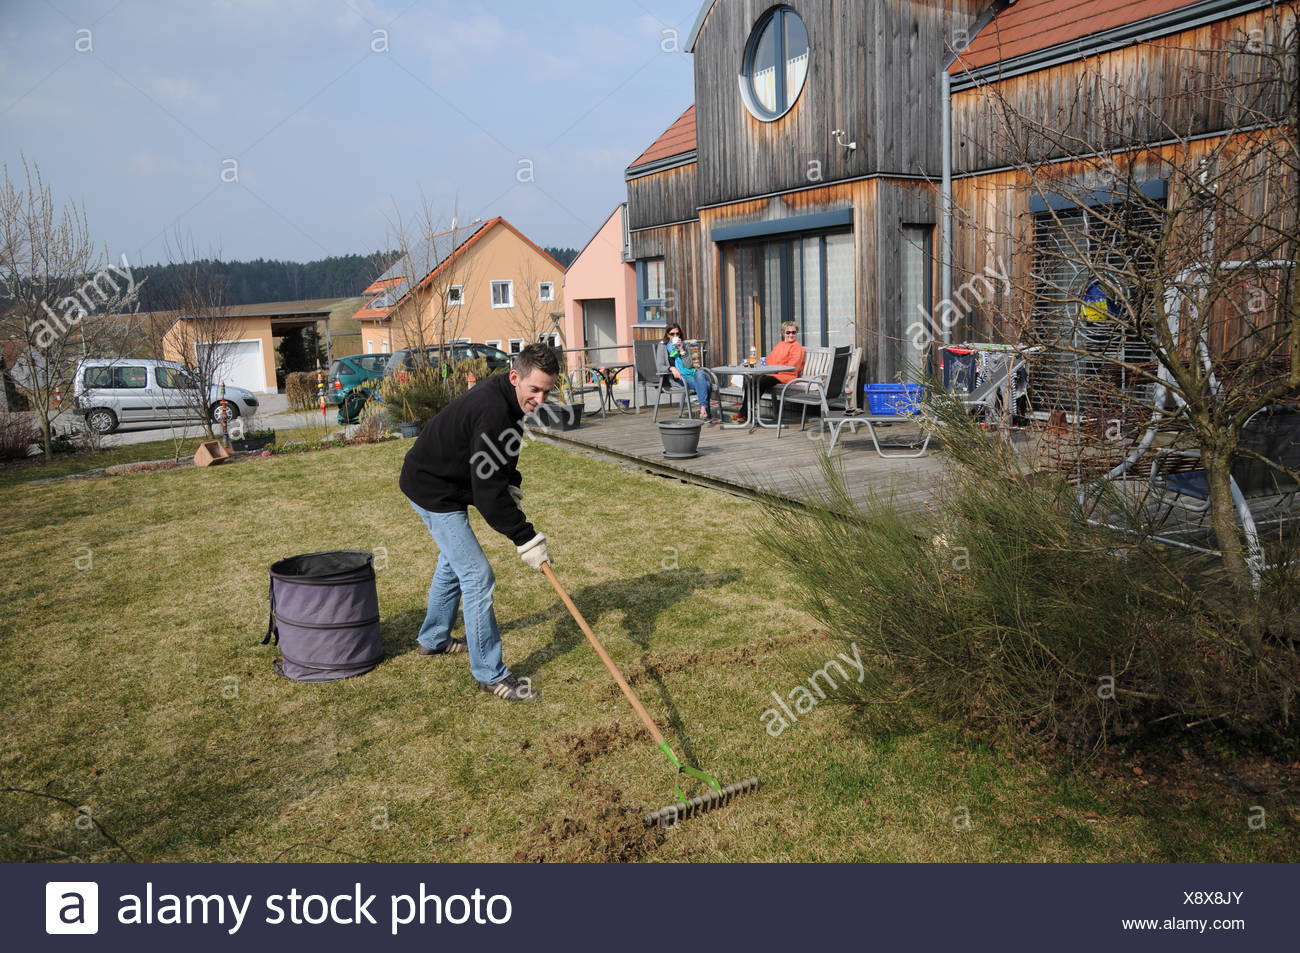 Lawn scarification - Stock Image